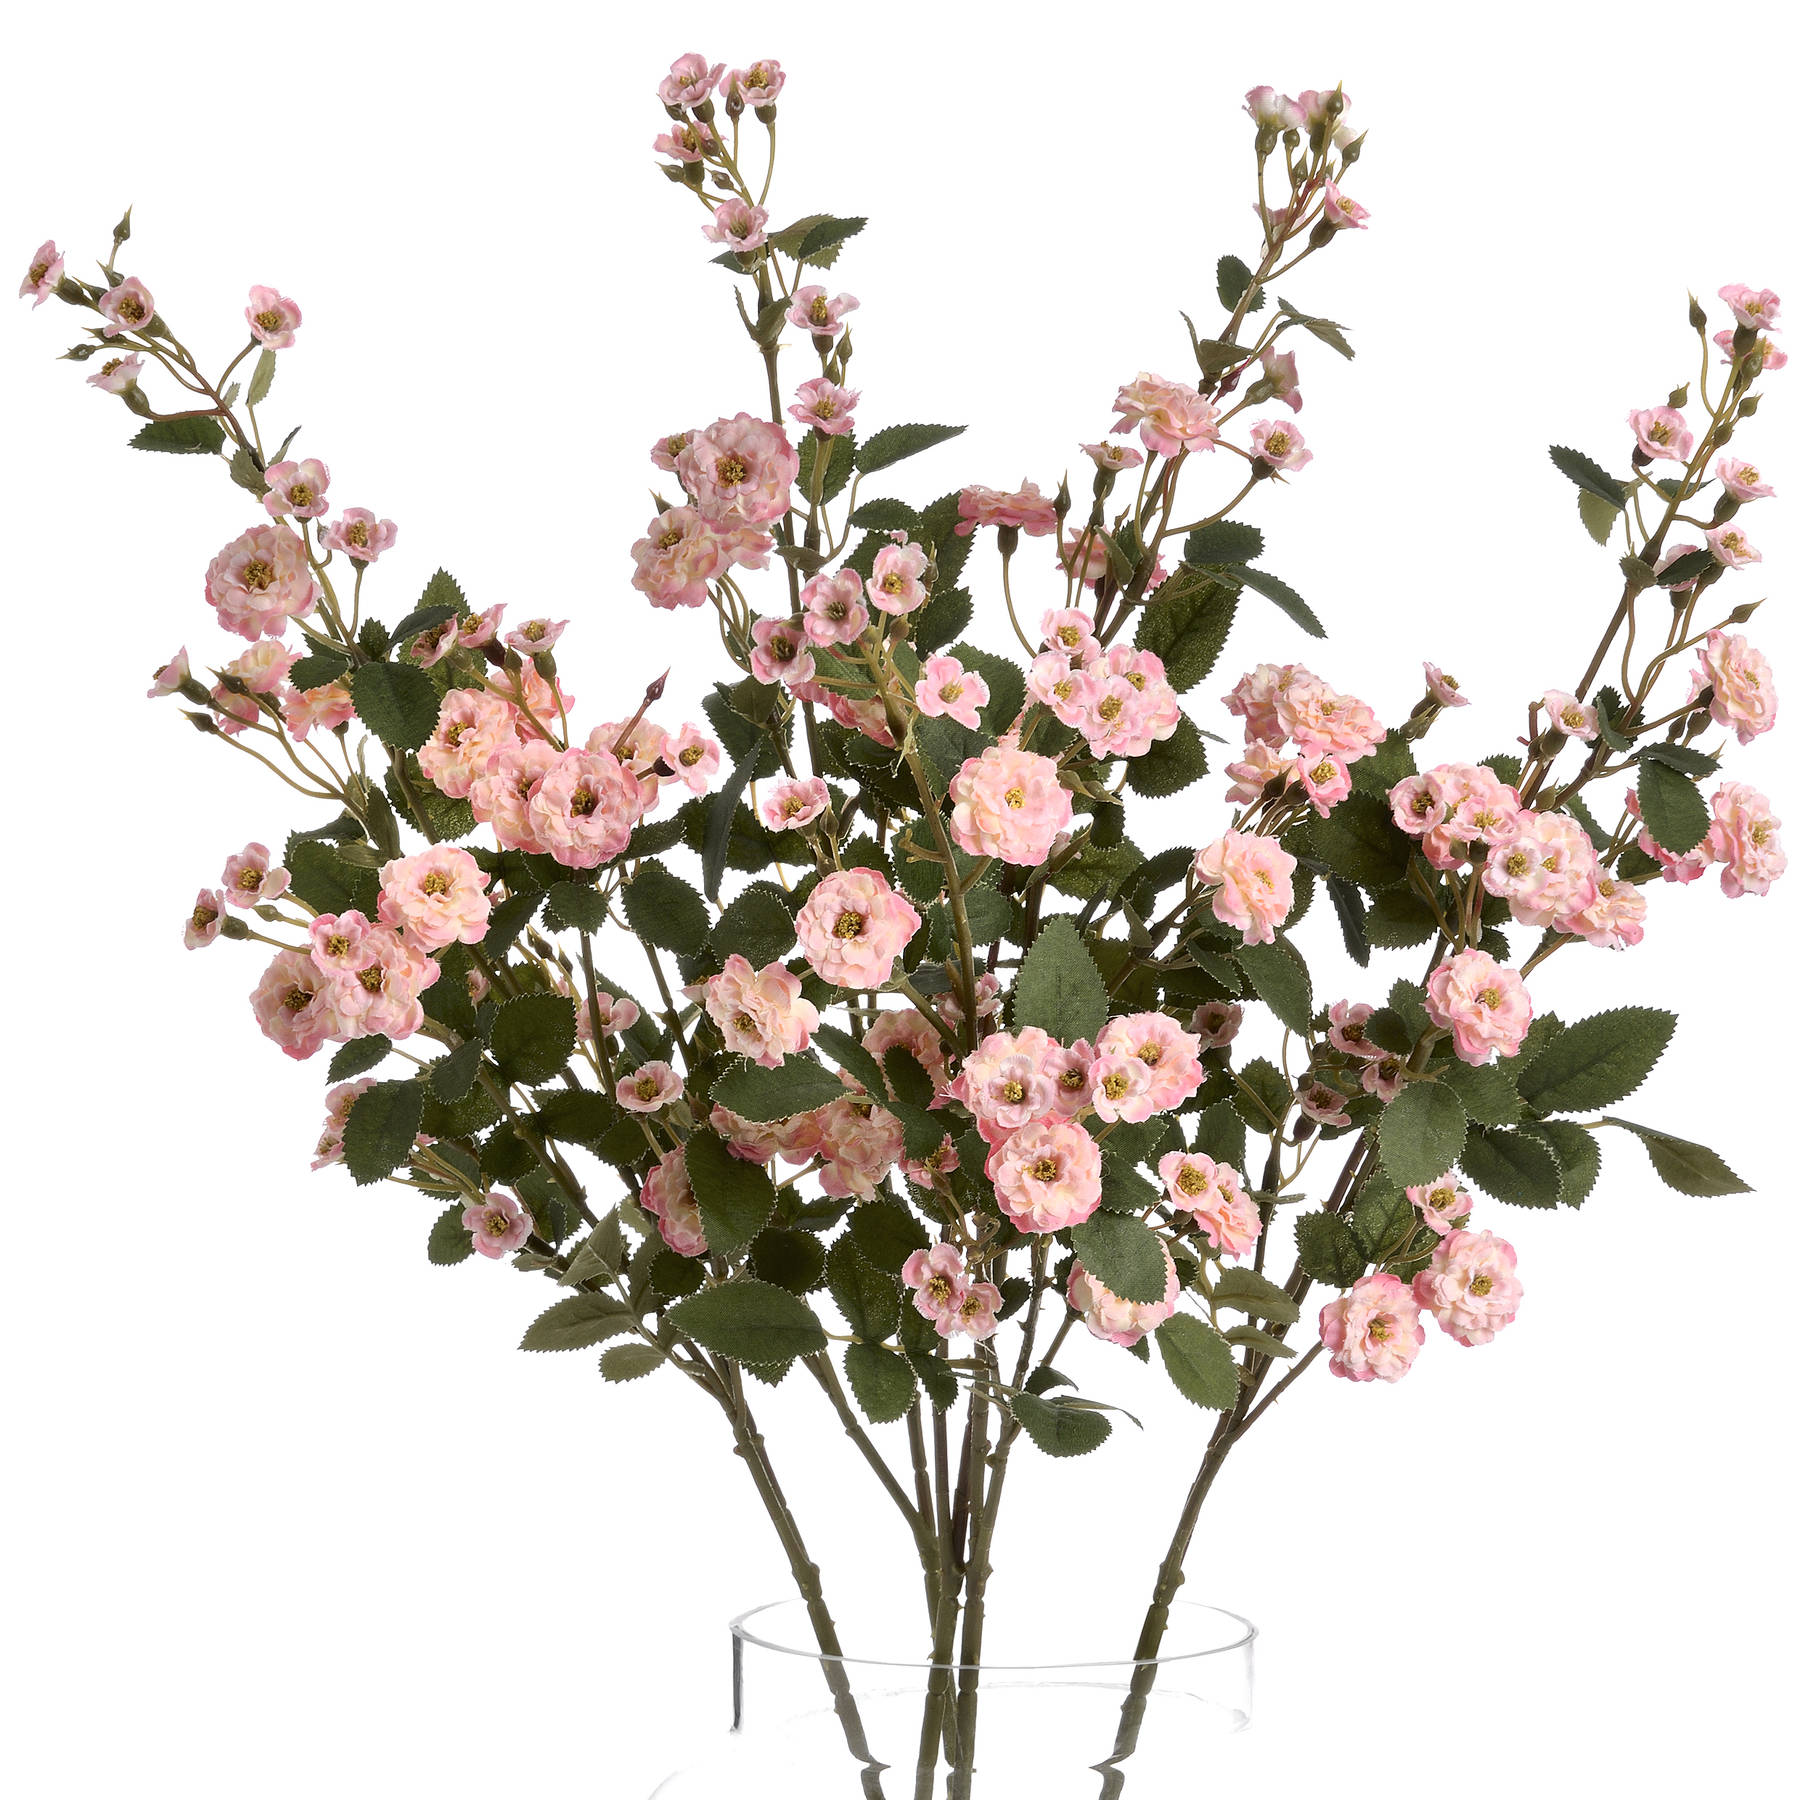 Pink Wild Meadow Rose - Image 4